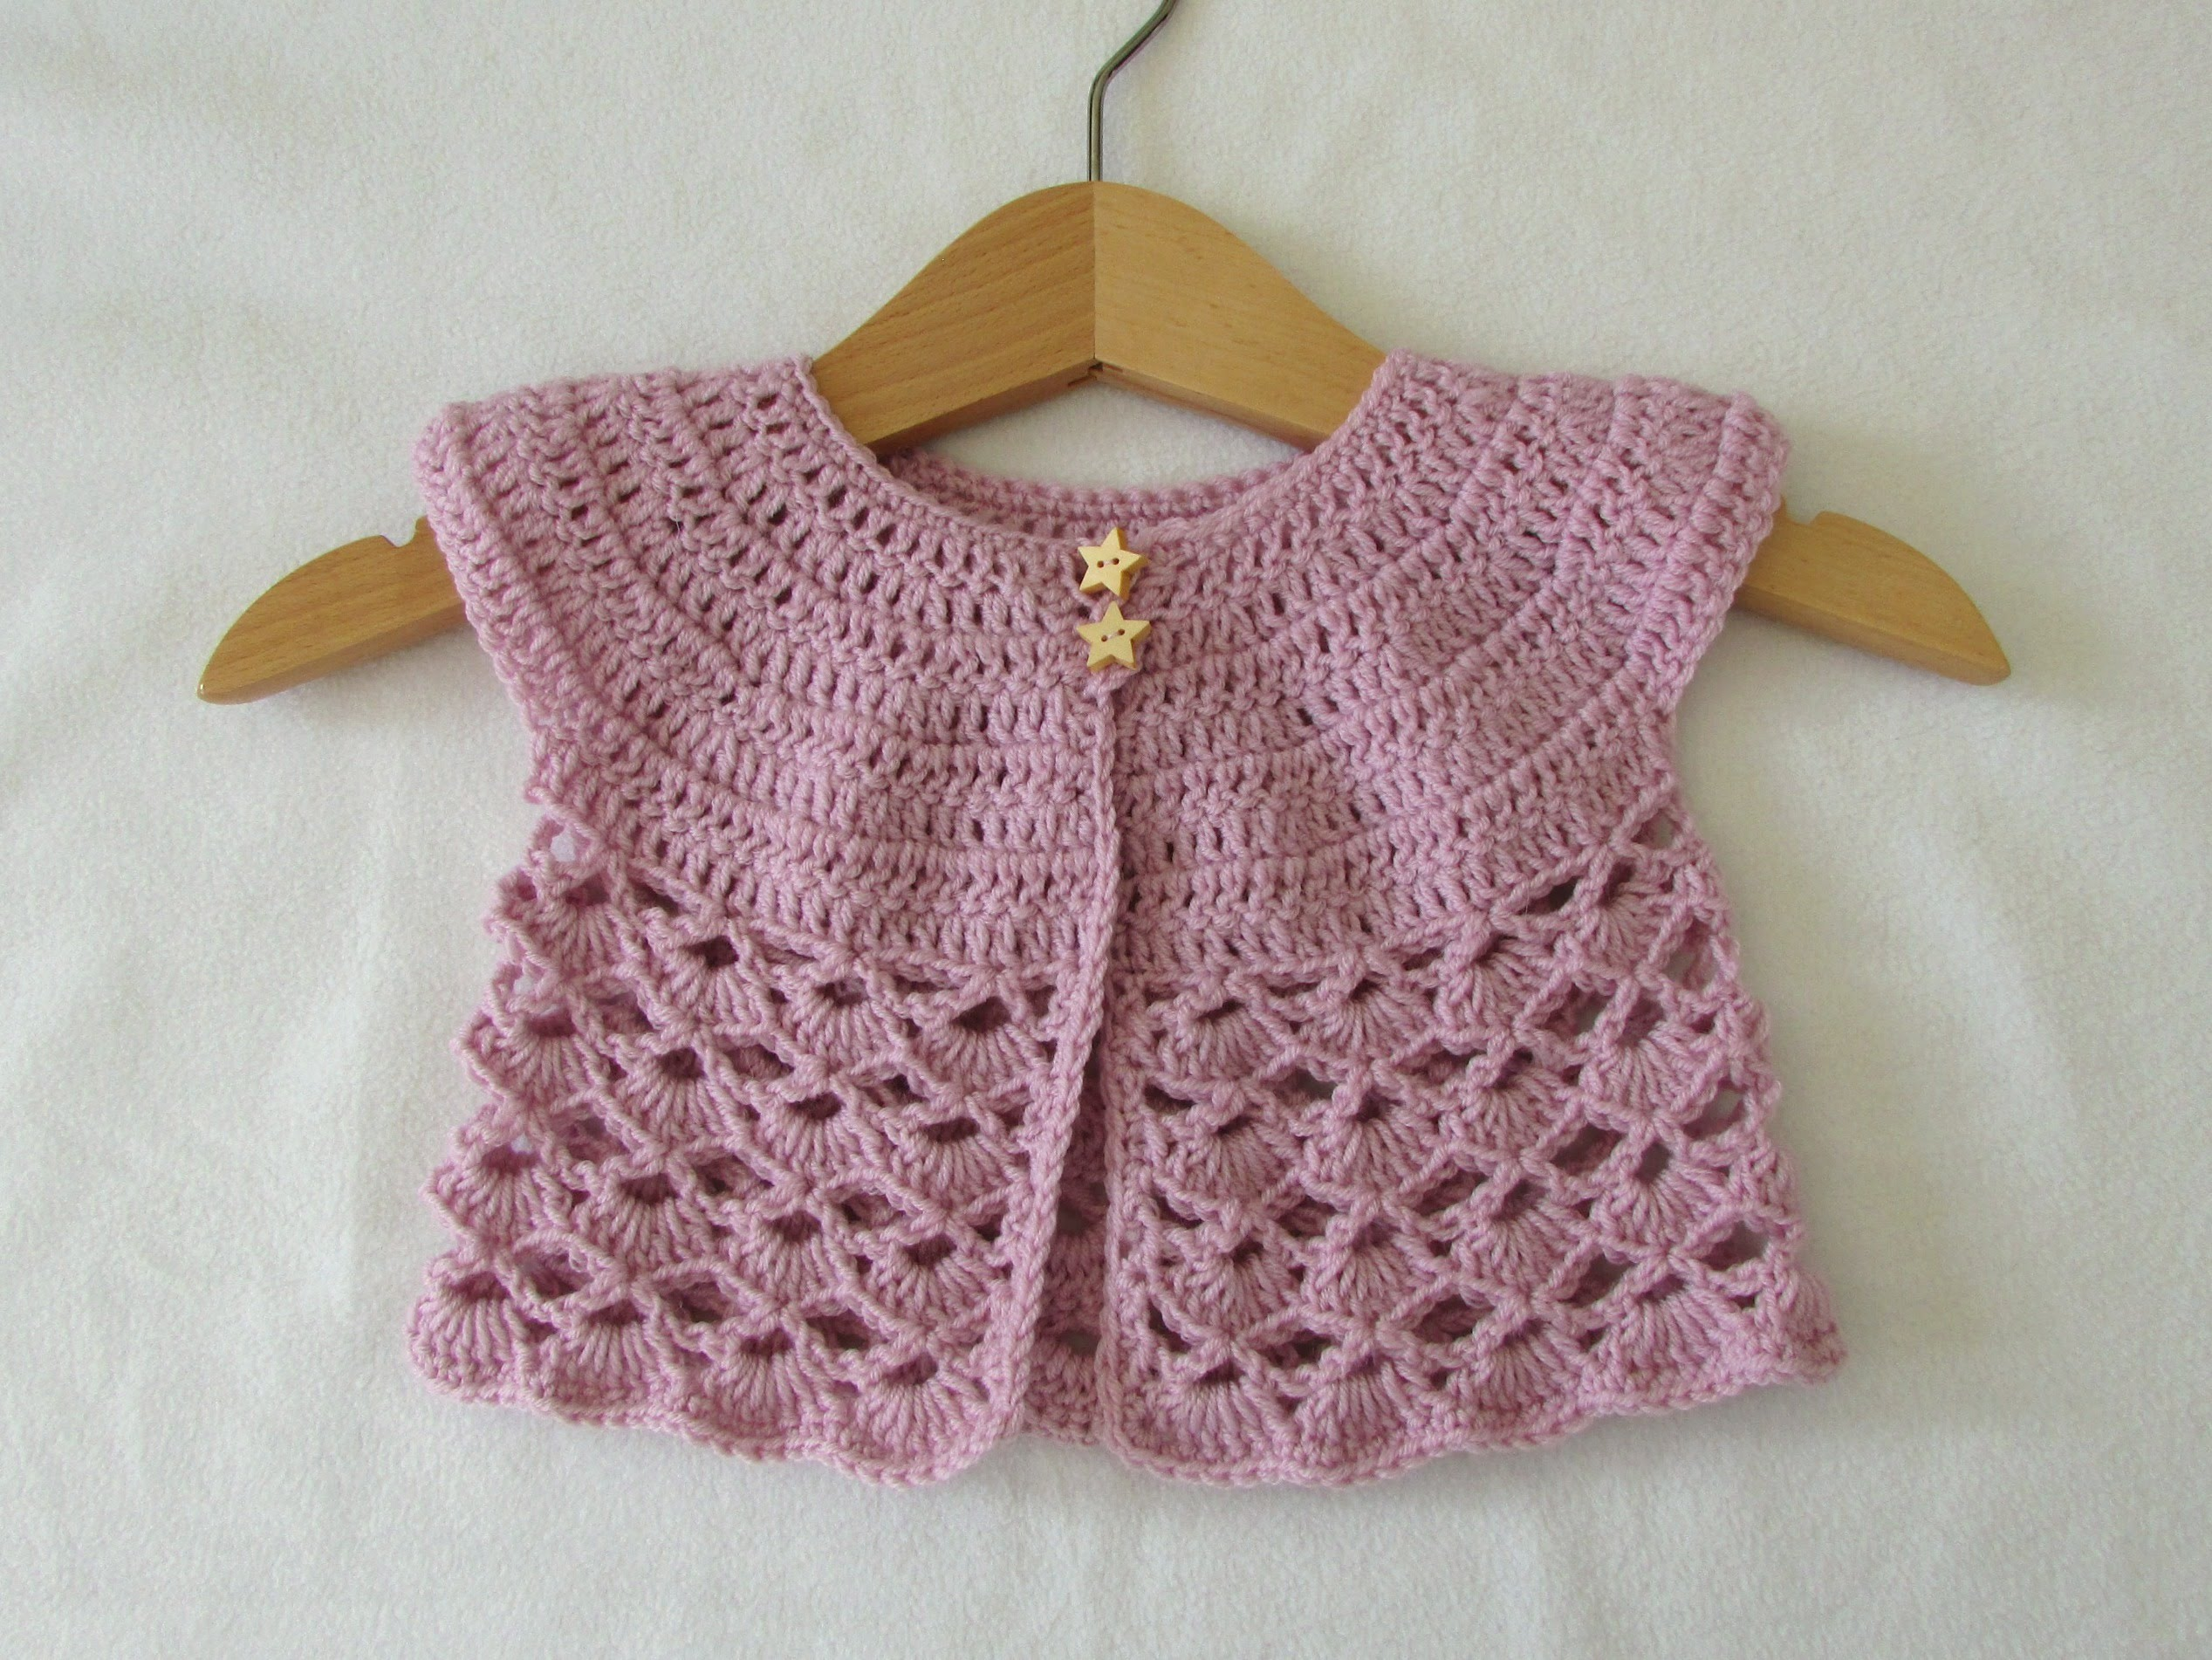 crochet baby sweater how to crochet an easy lace baby cardigan / sweater - youtube NBSQGRU